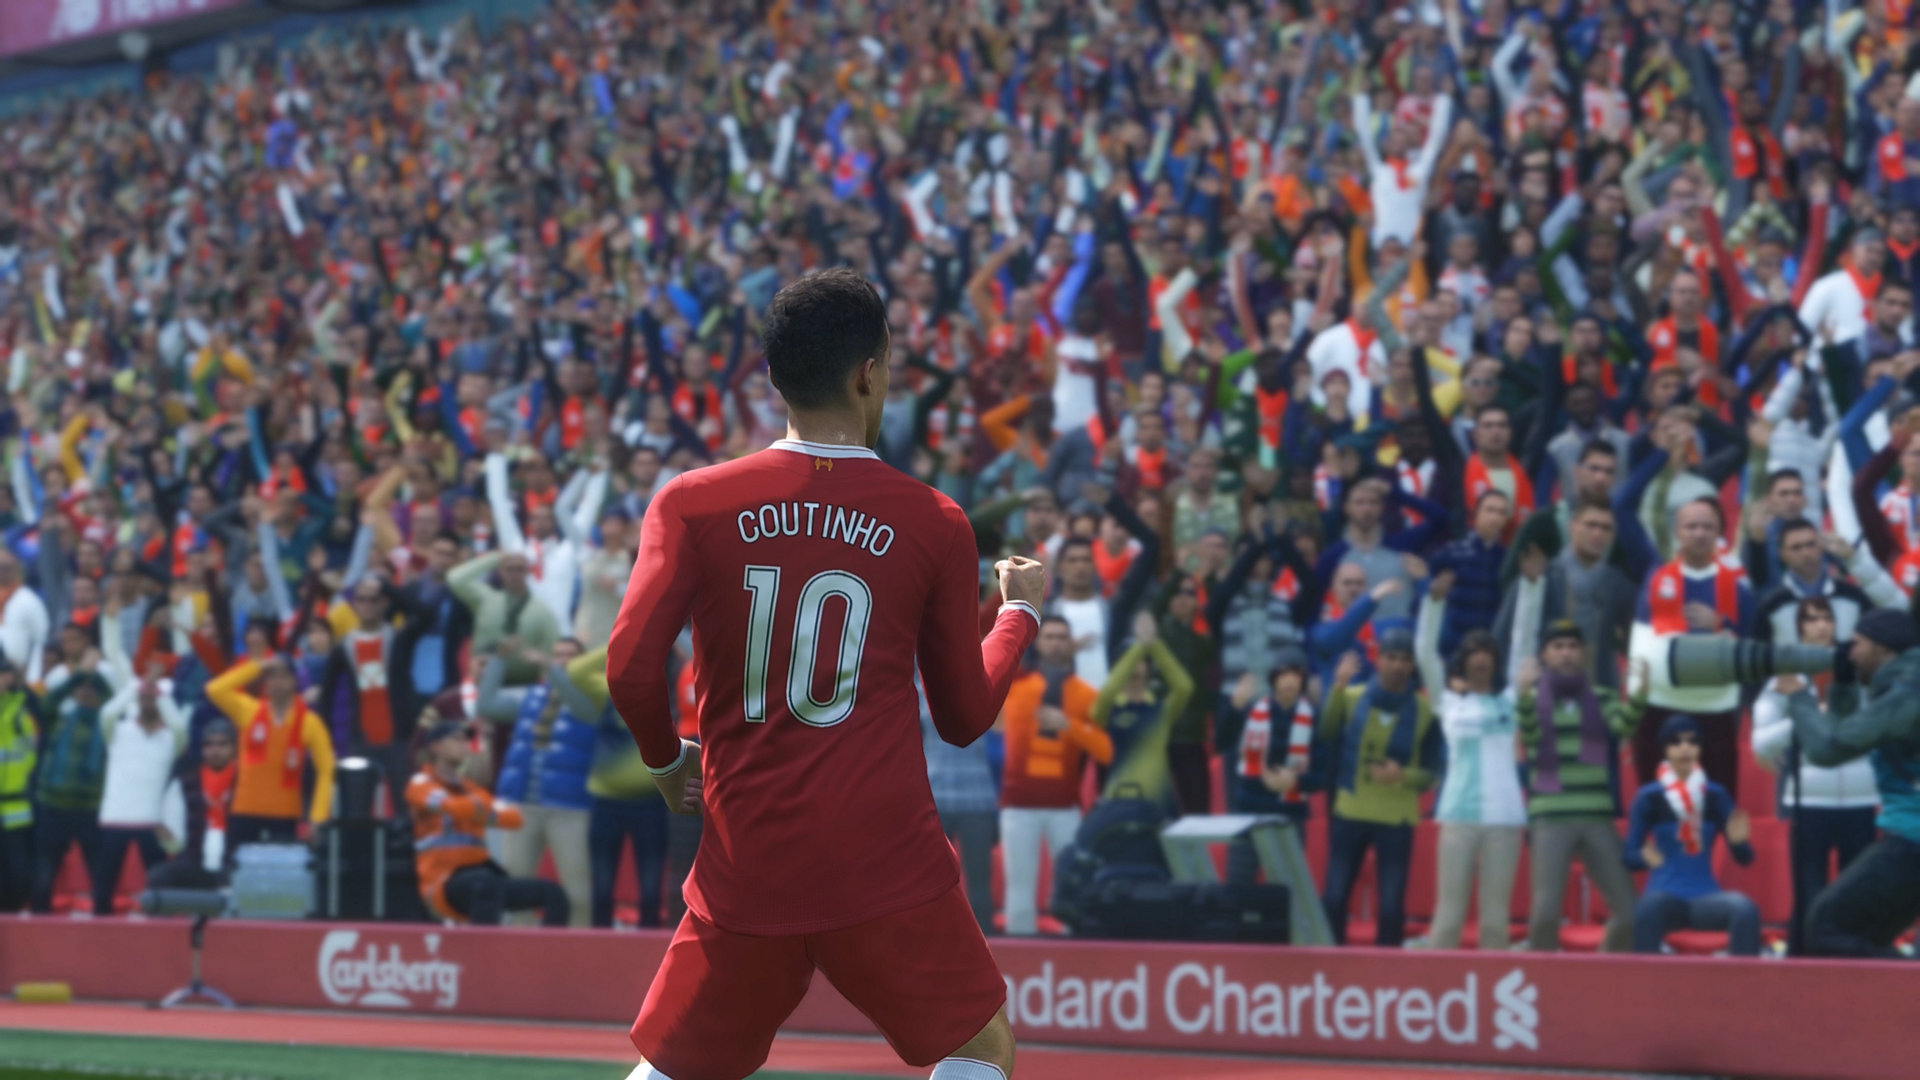 Philippe Coutinho HD Wallpaper